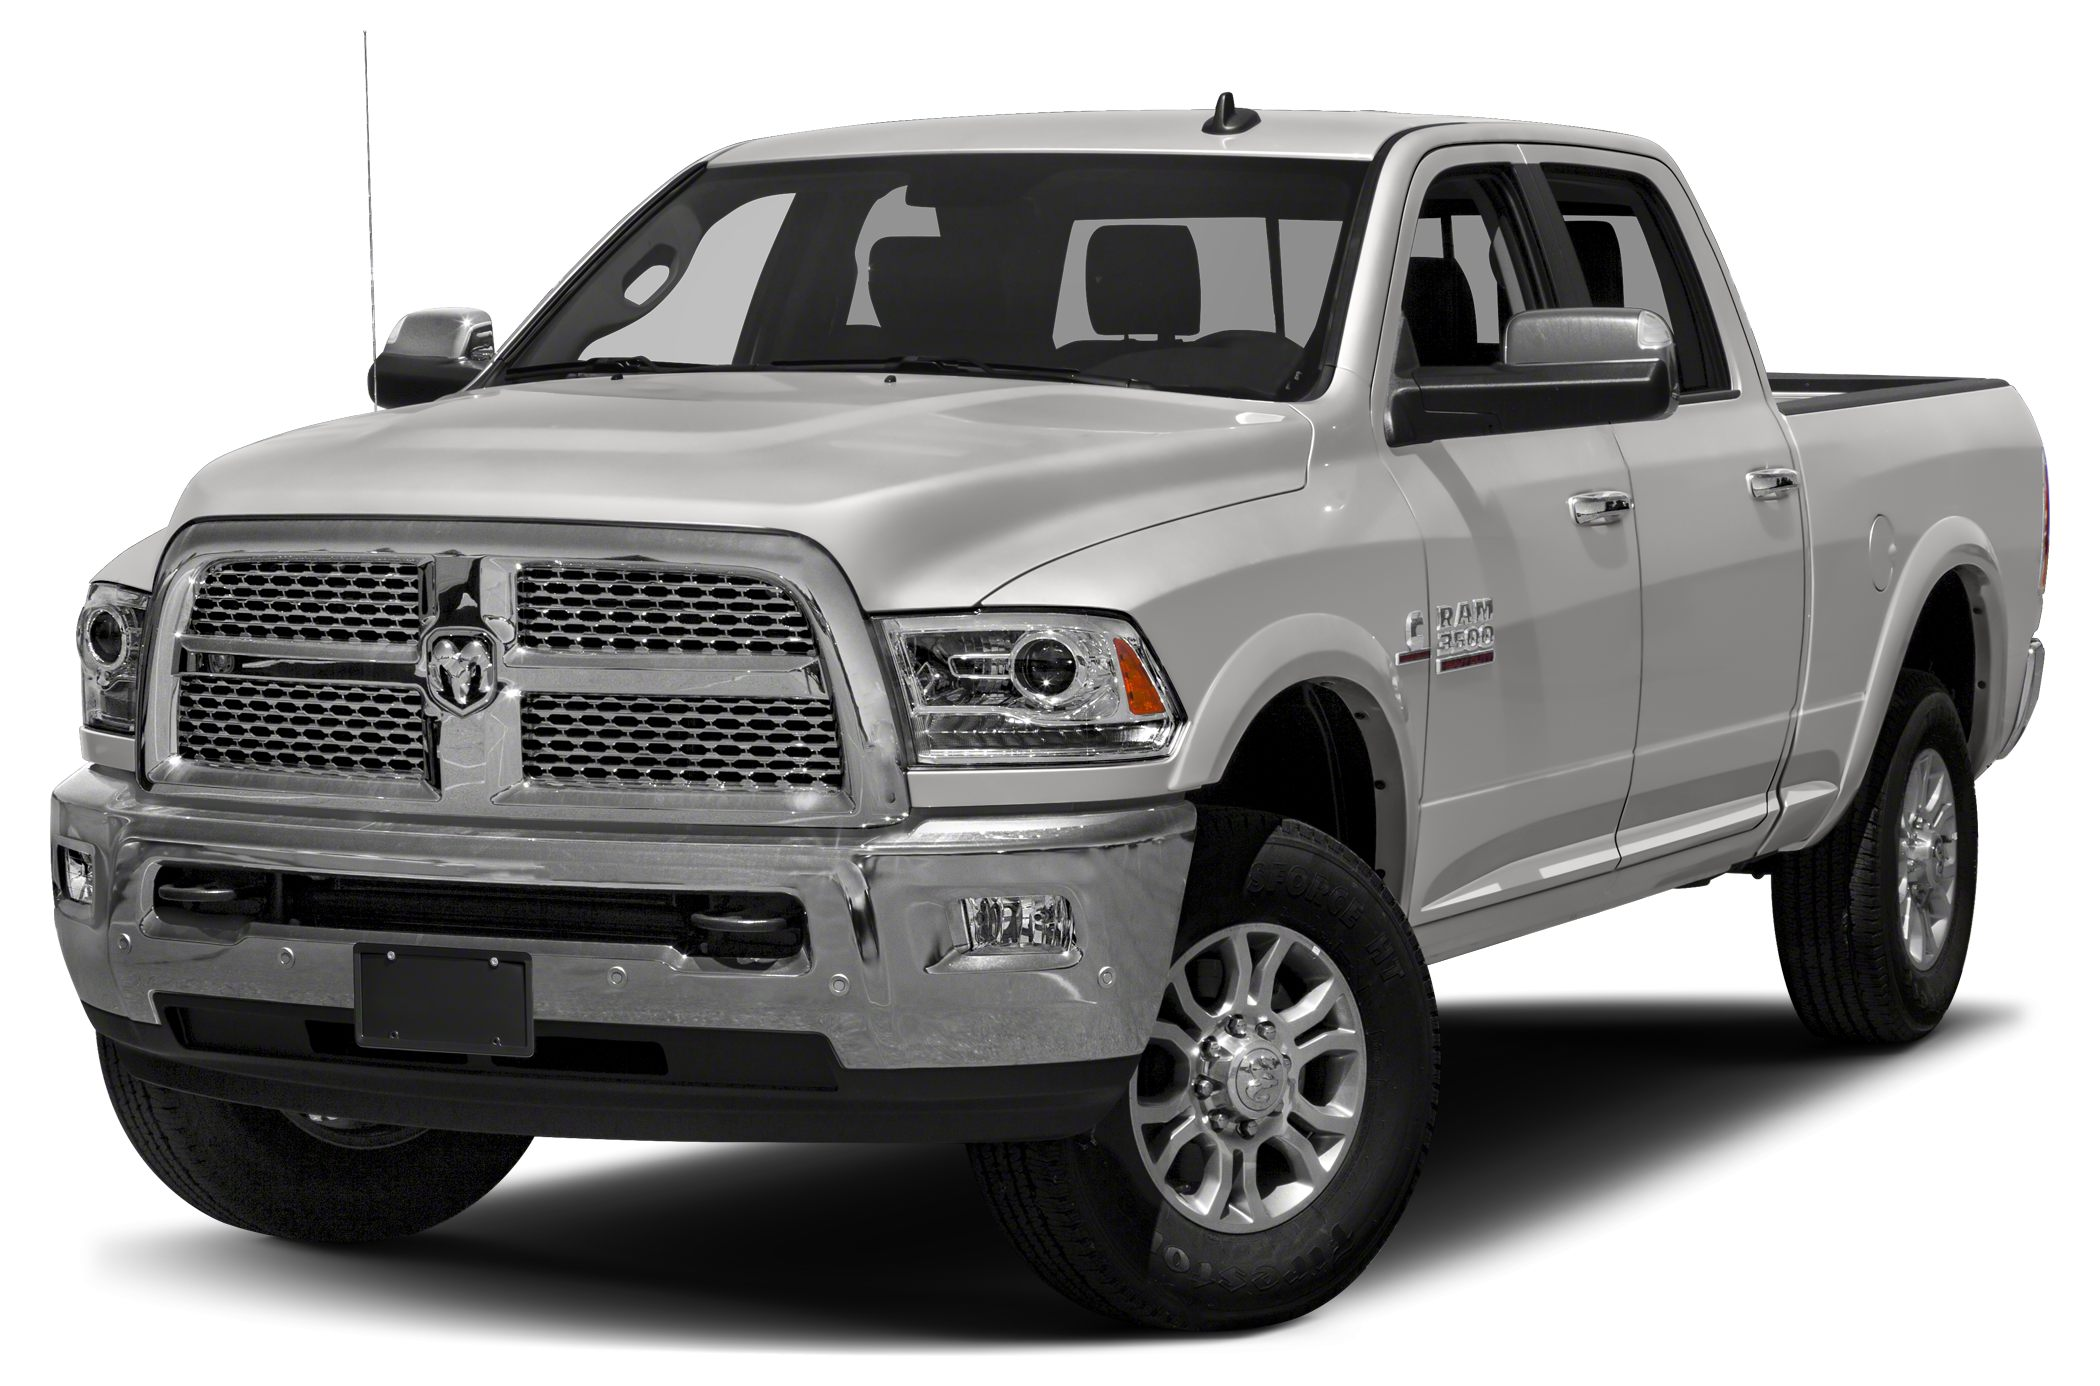 2018 RAM 3500 Laramie Crystal Metallic 2018 Ram 3500 Laramie 4WD 6-Speed Automatic Cummins 67L I6